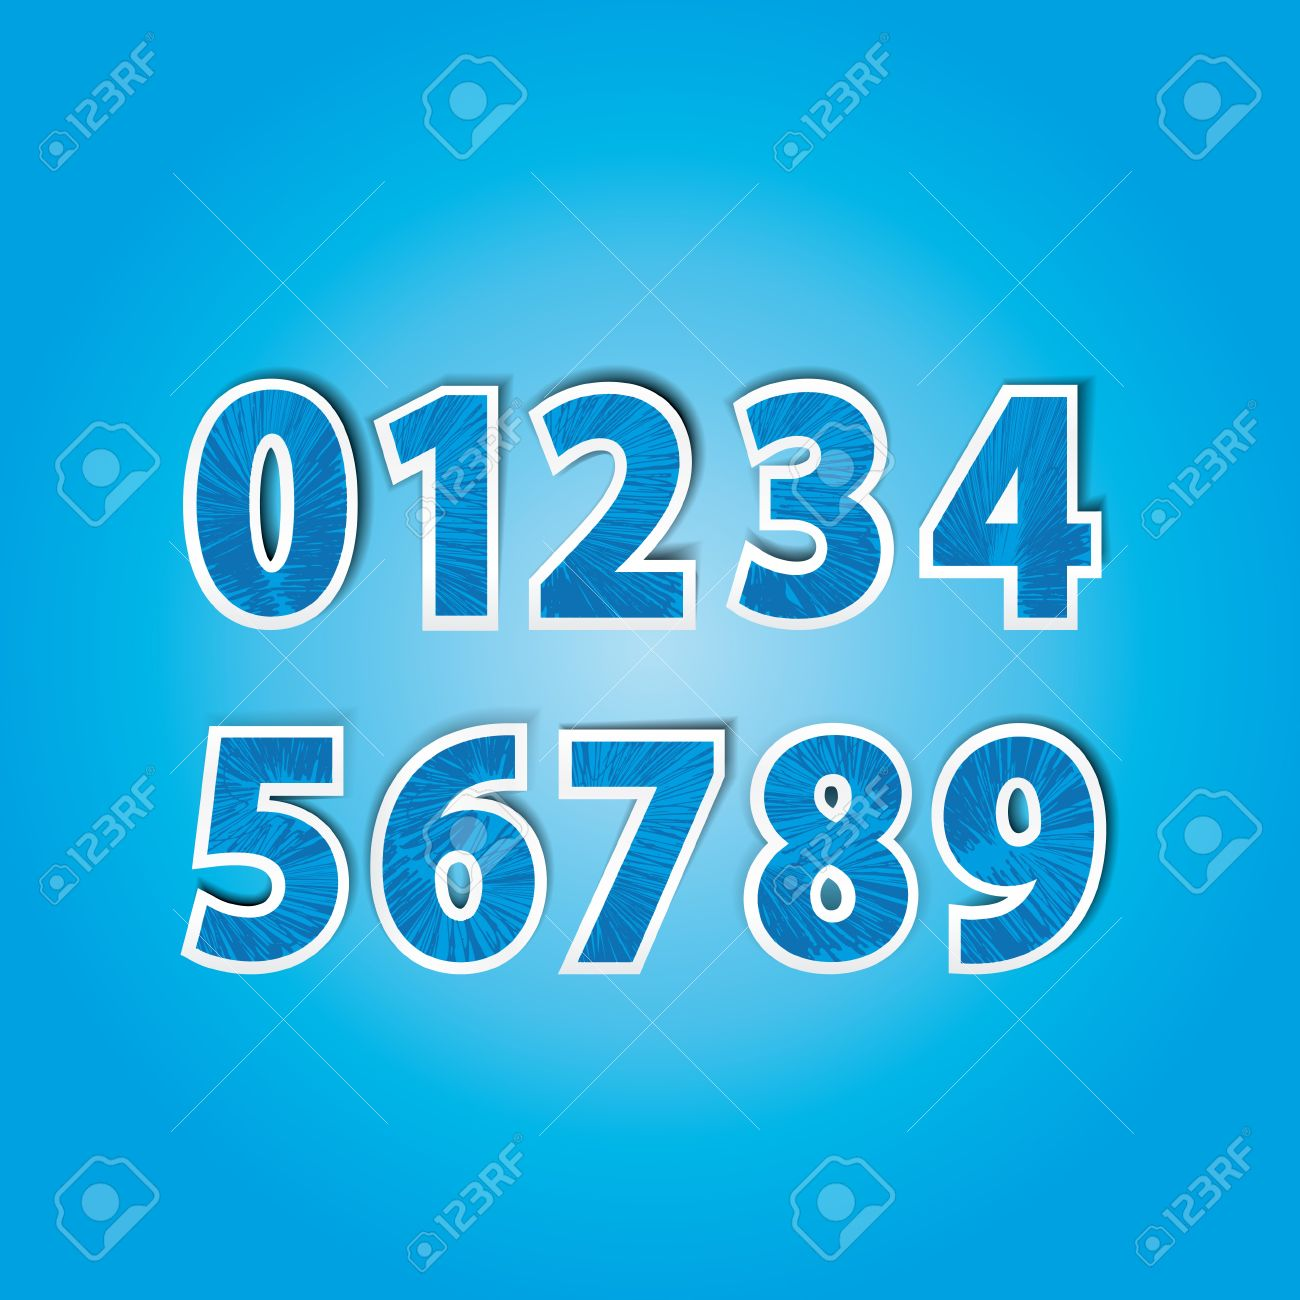 stickers with numbers from 0 to 9 in the color blue Stock Vector - 13498860